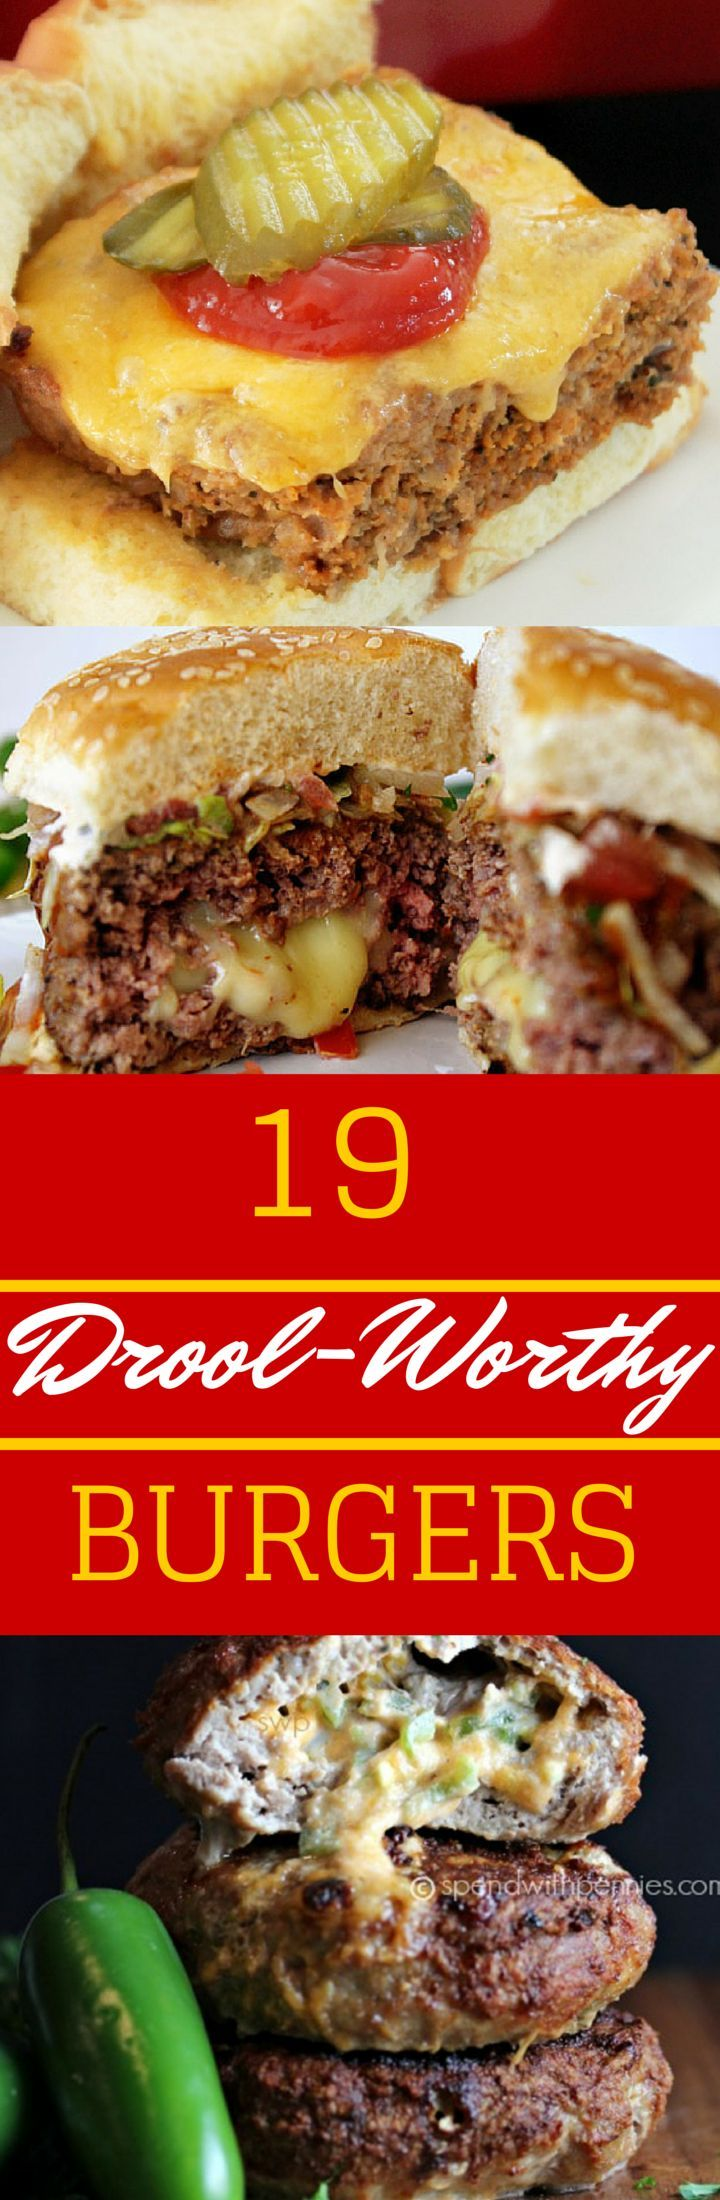 19 Drool-Worthy Burgers for Grilling Season from @creolecontessa.